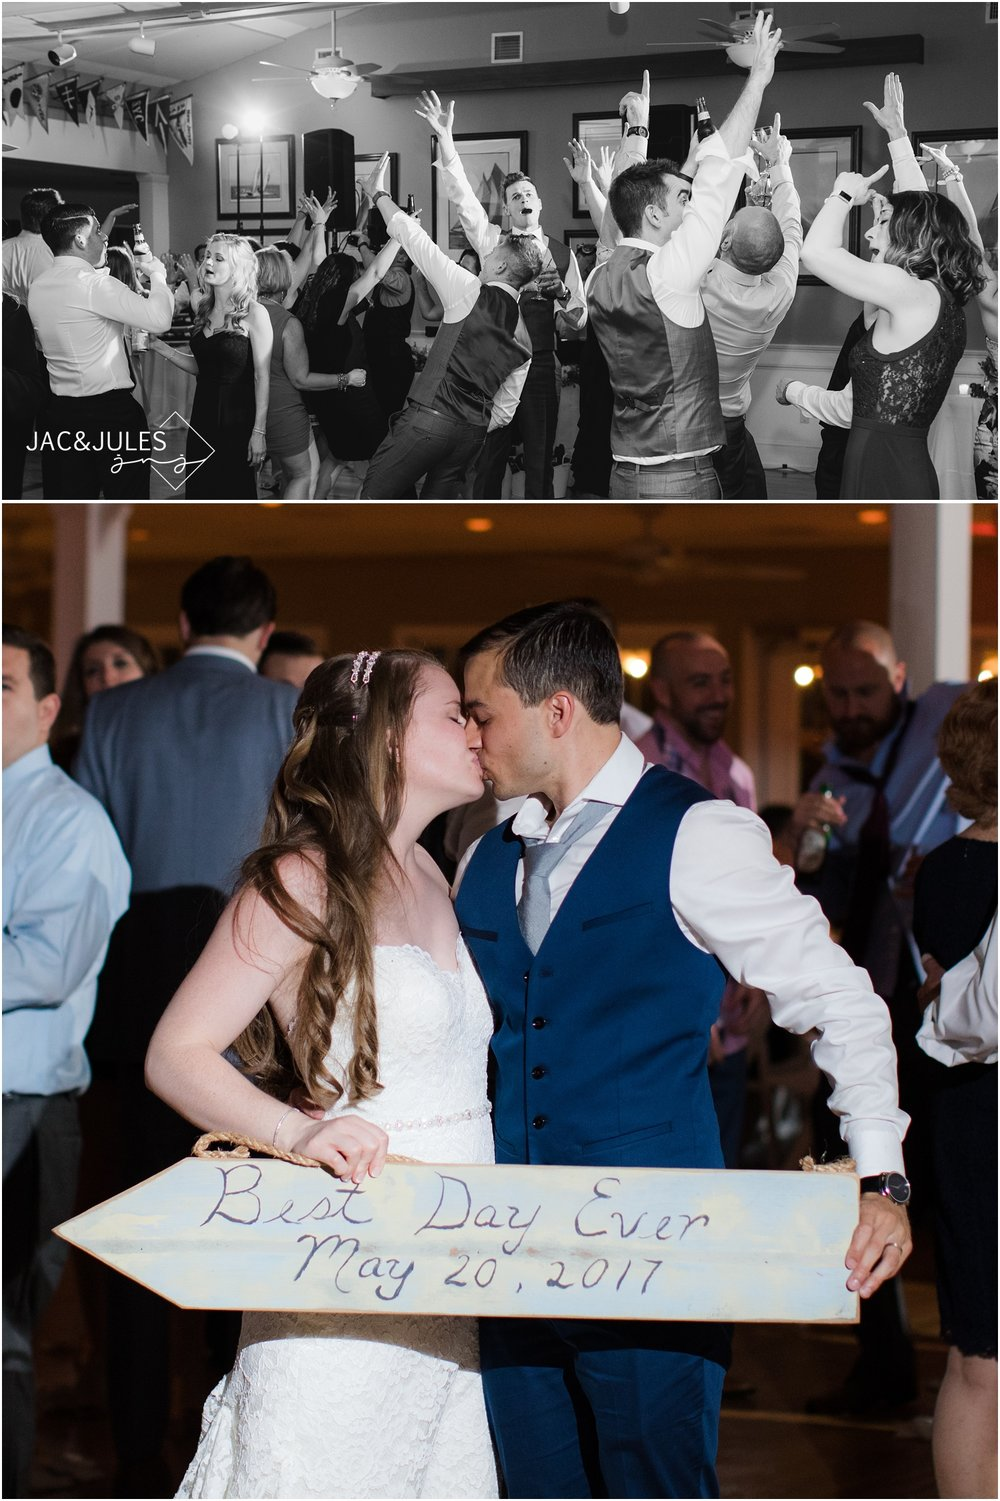 Bride and groom with best day ever wedding sign at Brant Beach Yacht Club in Beach Haven, NJ.